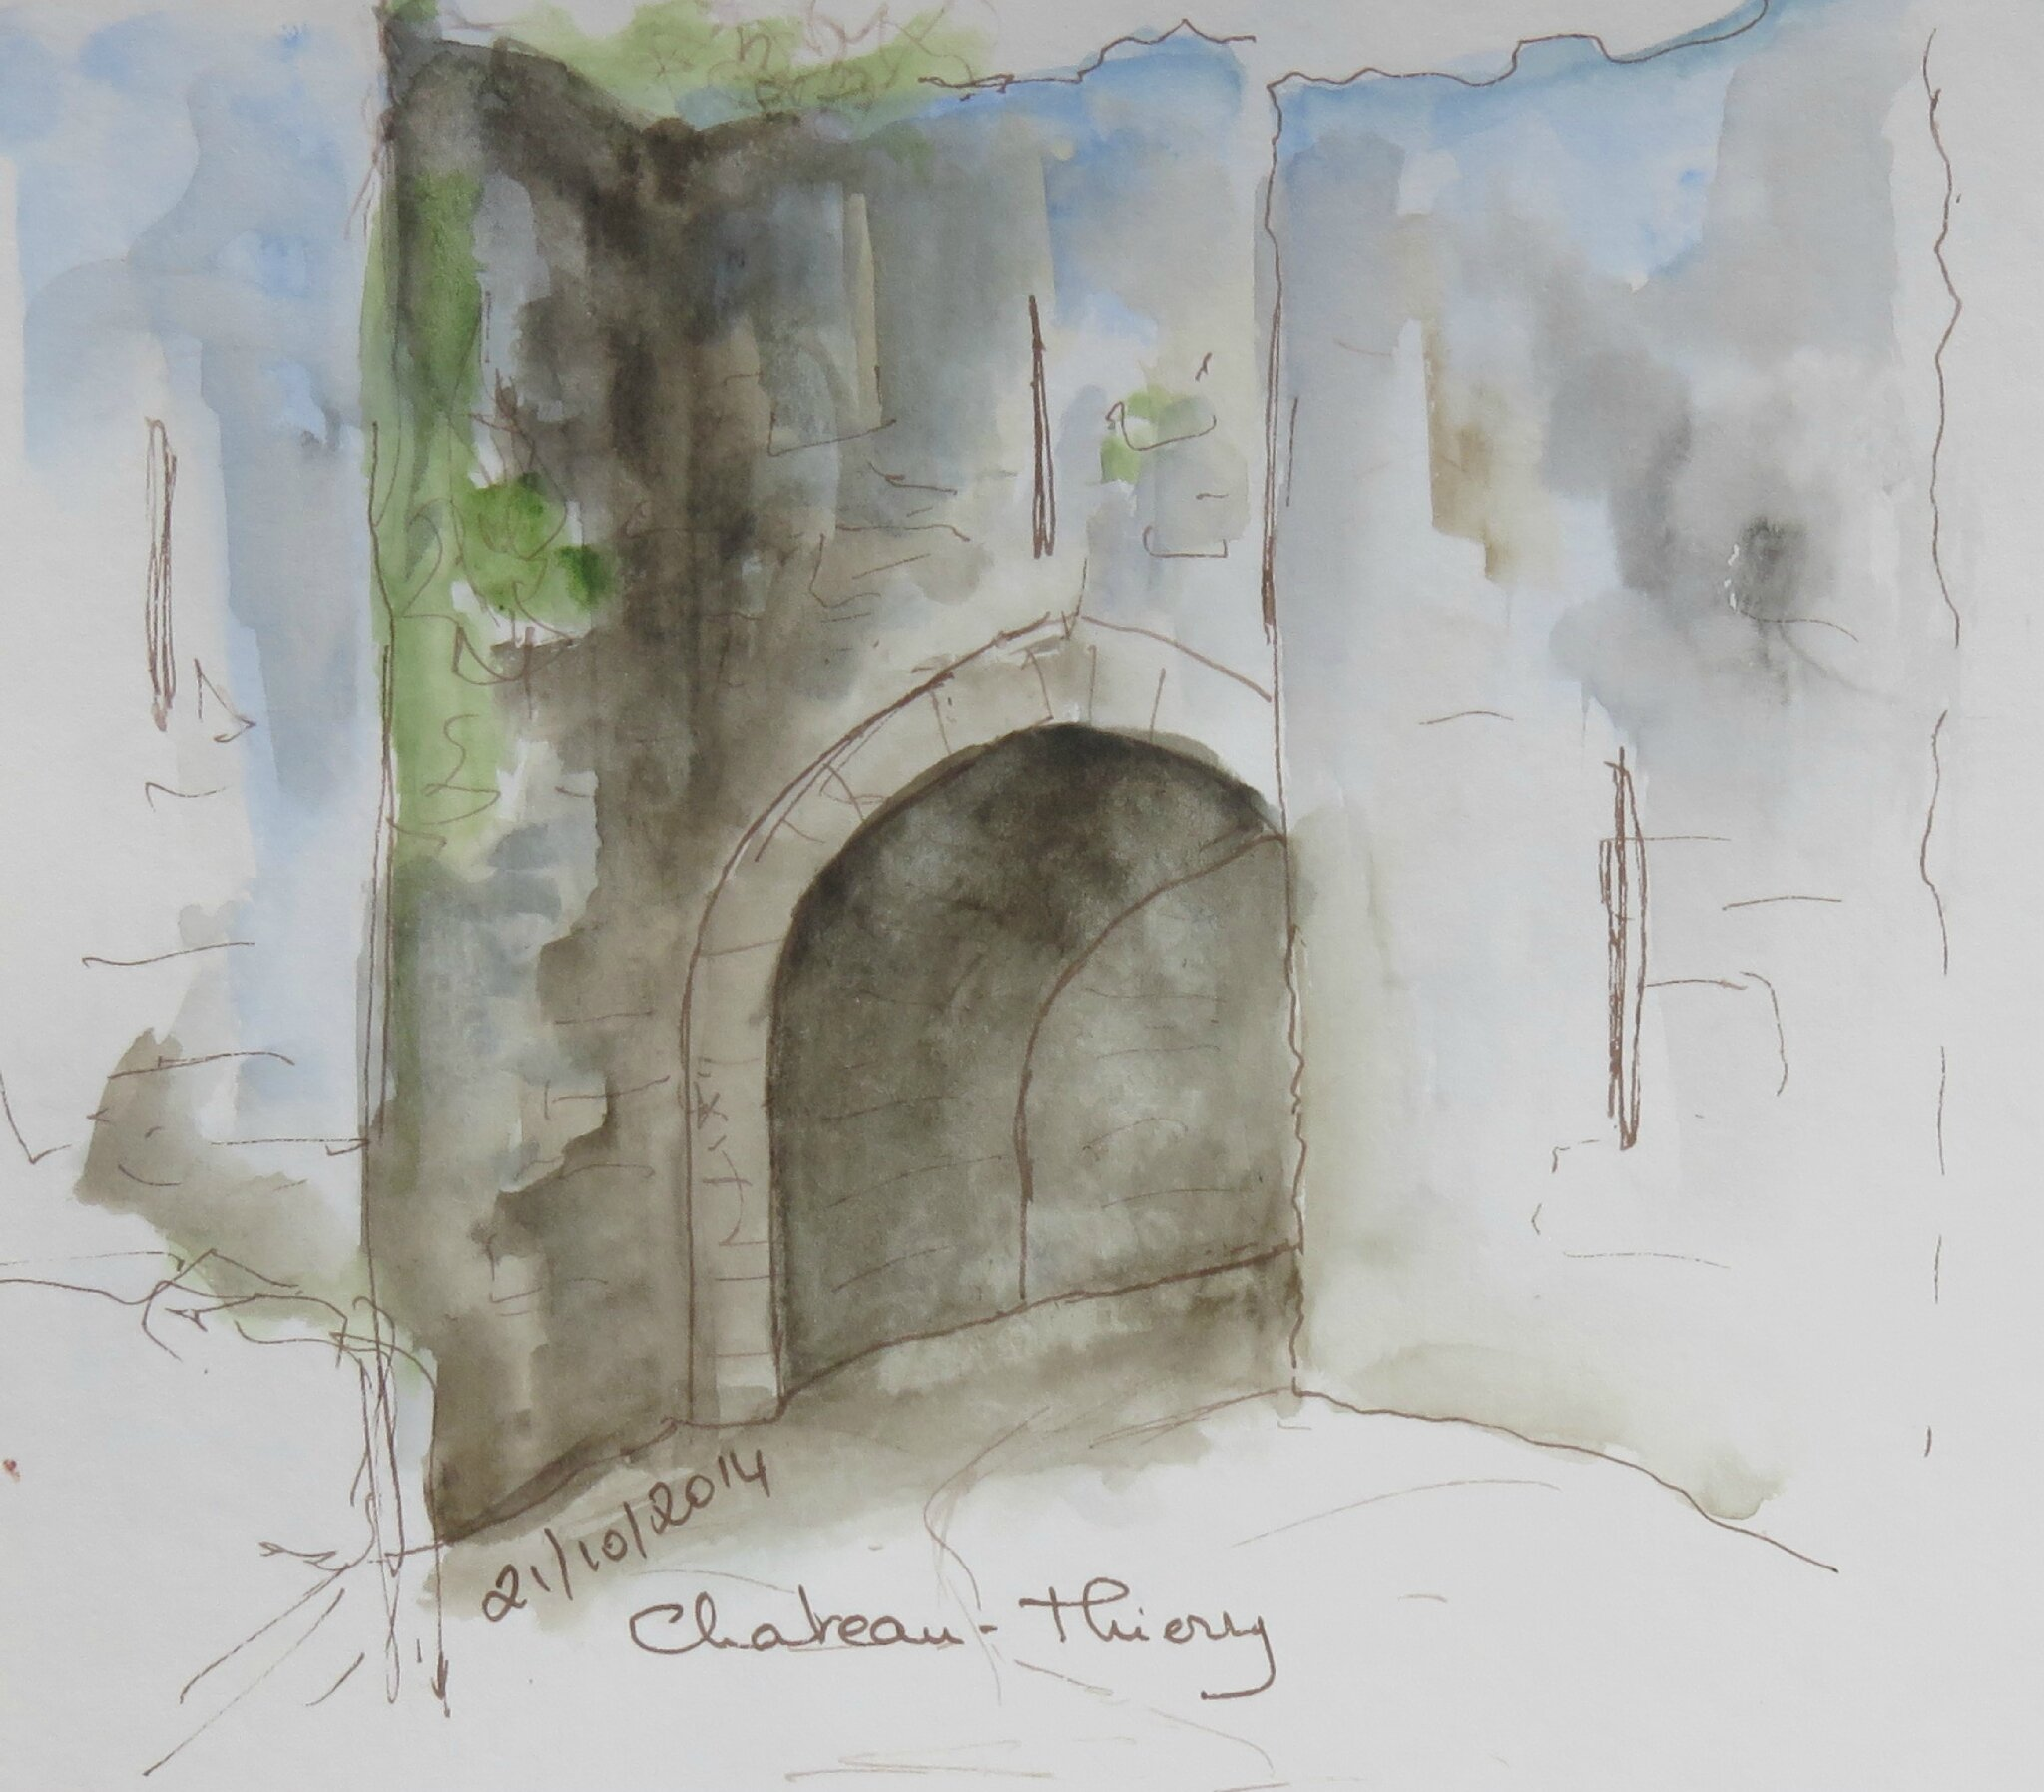 02-Chateau-Thierry-2